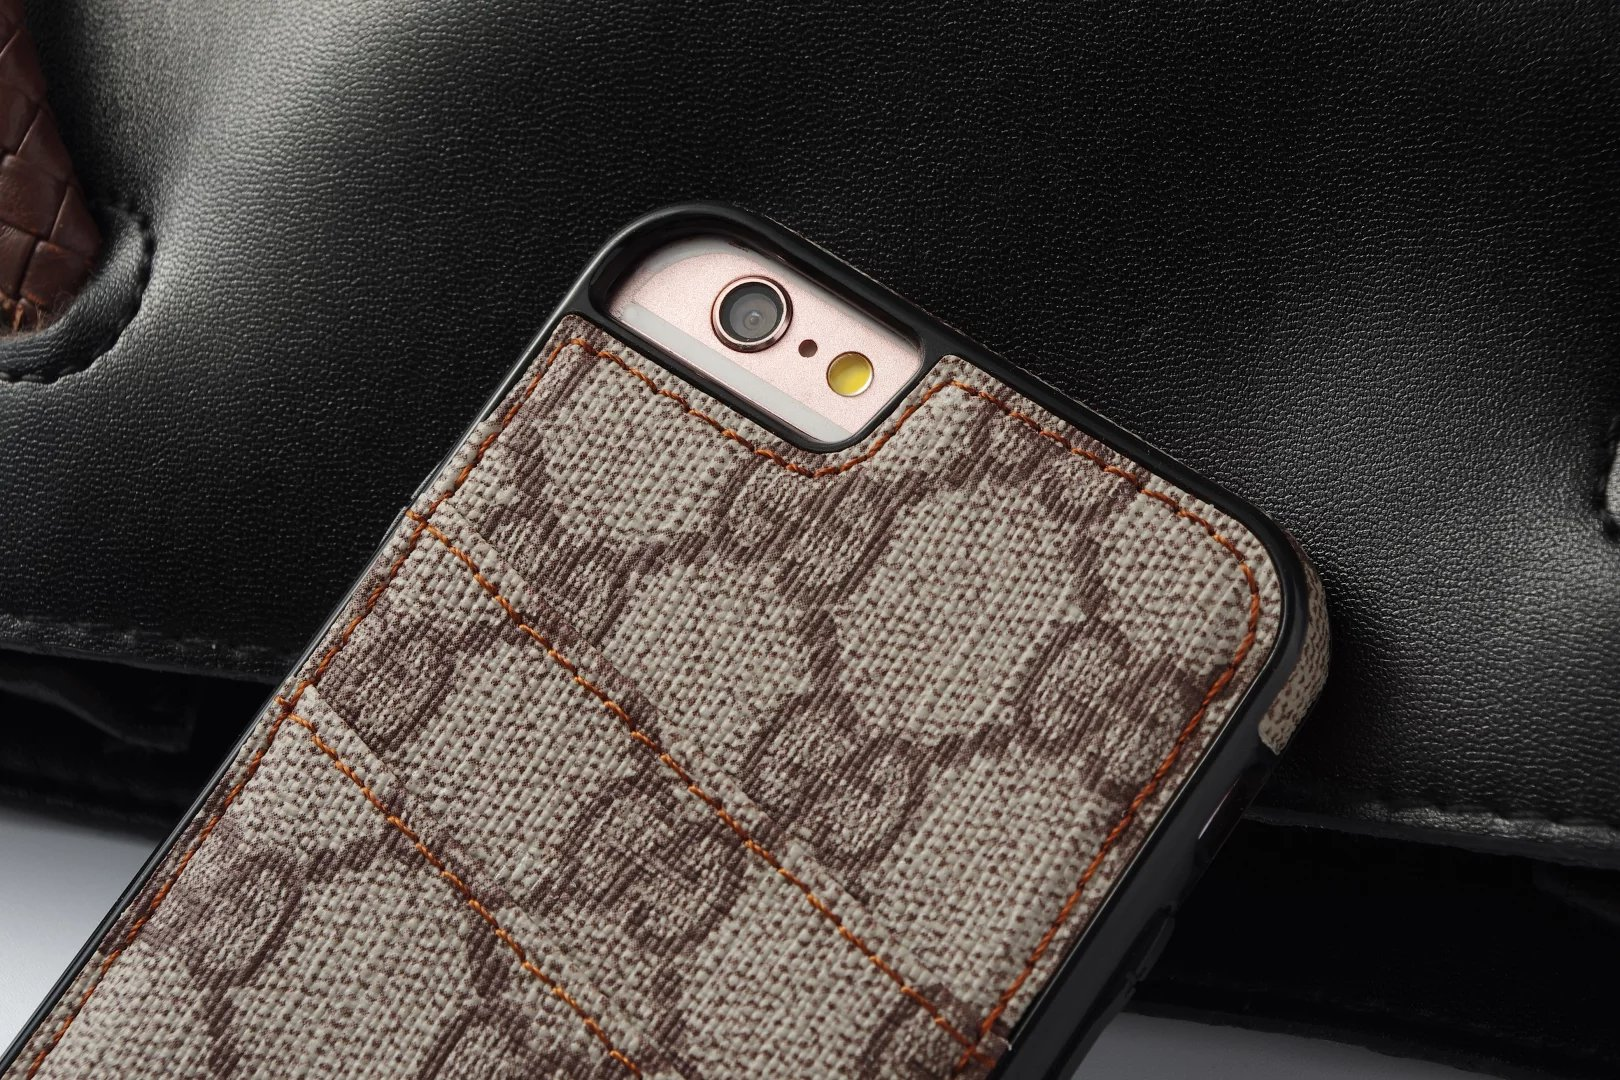 iphone 6s fashion case iphone 6s cases website fashion iphone6s case phone cases iphone protective ipod 6s cases phone cases for iphone 6s specs on the iphone 6s life proof case i 6s phone cases